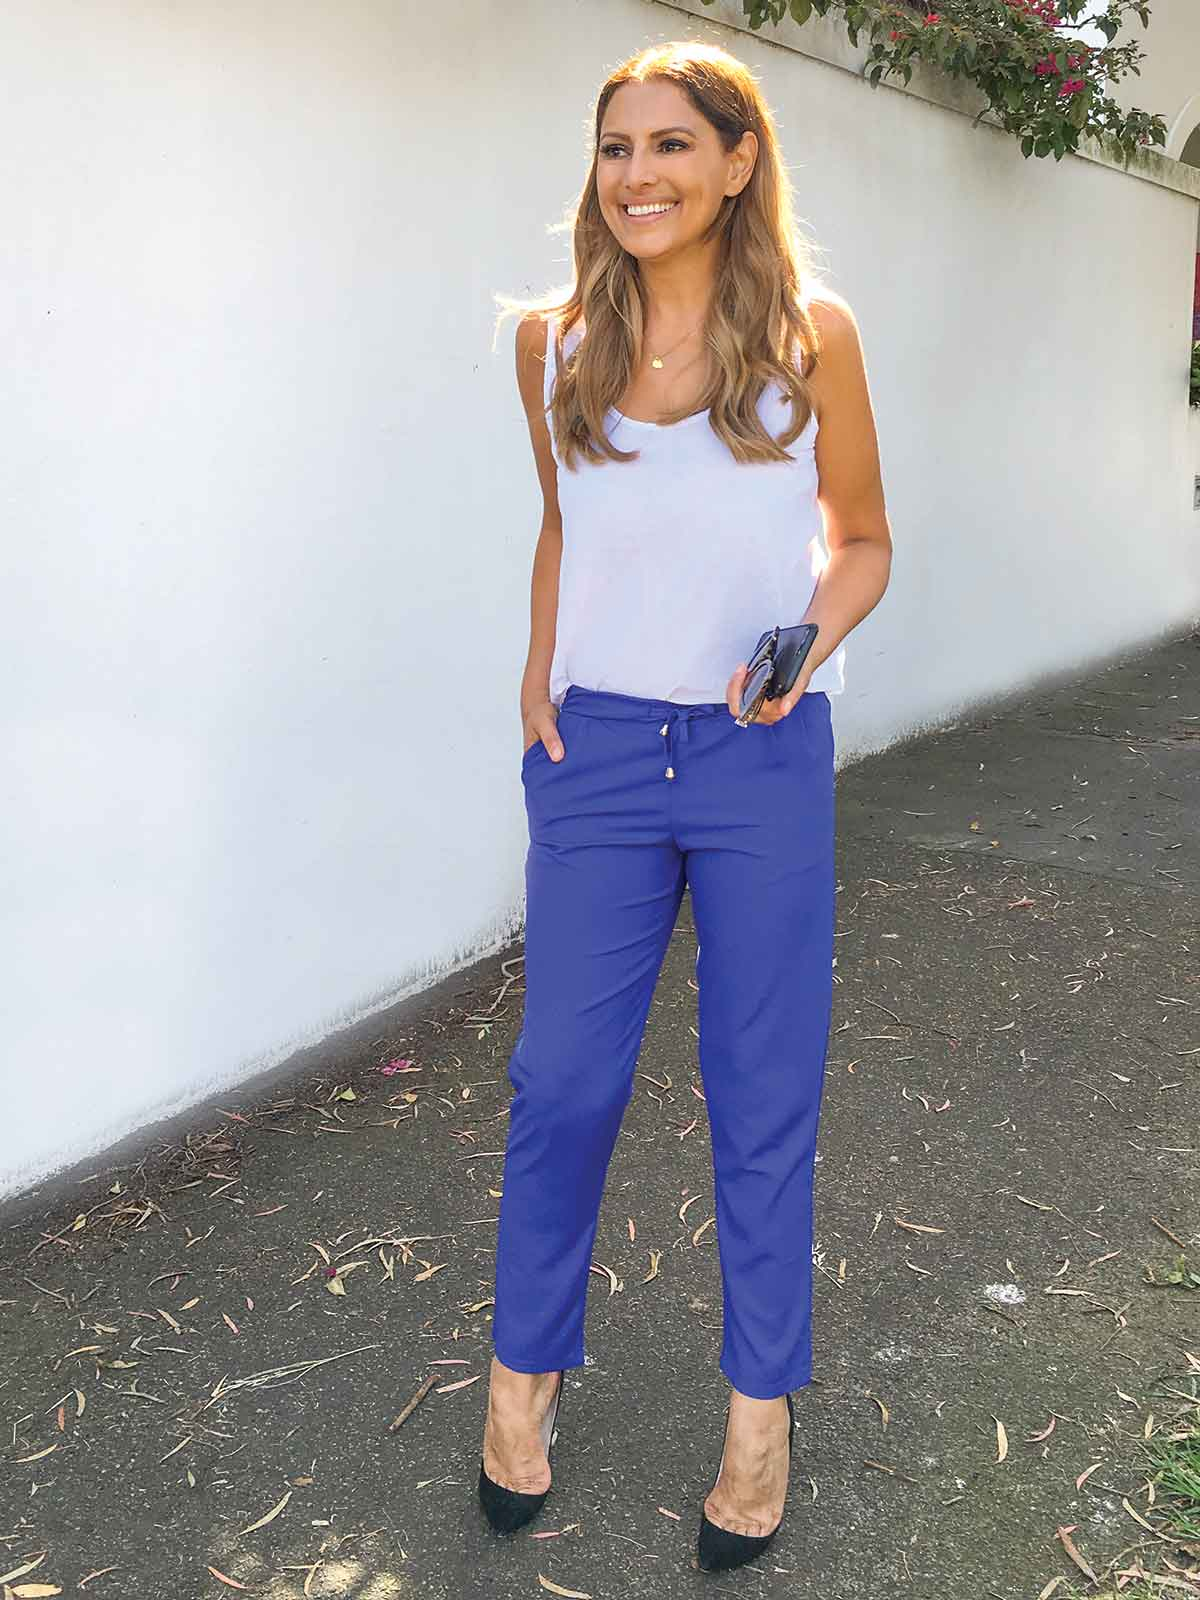 BEAUTIFUL DAY ROYAL BLUE PANT